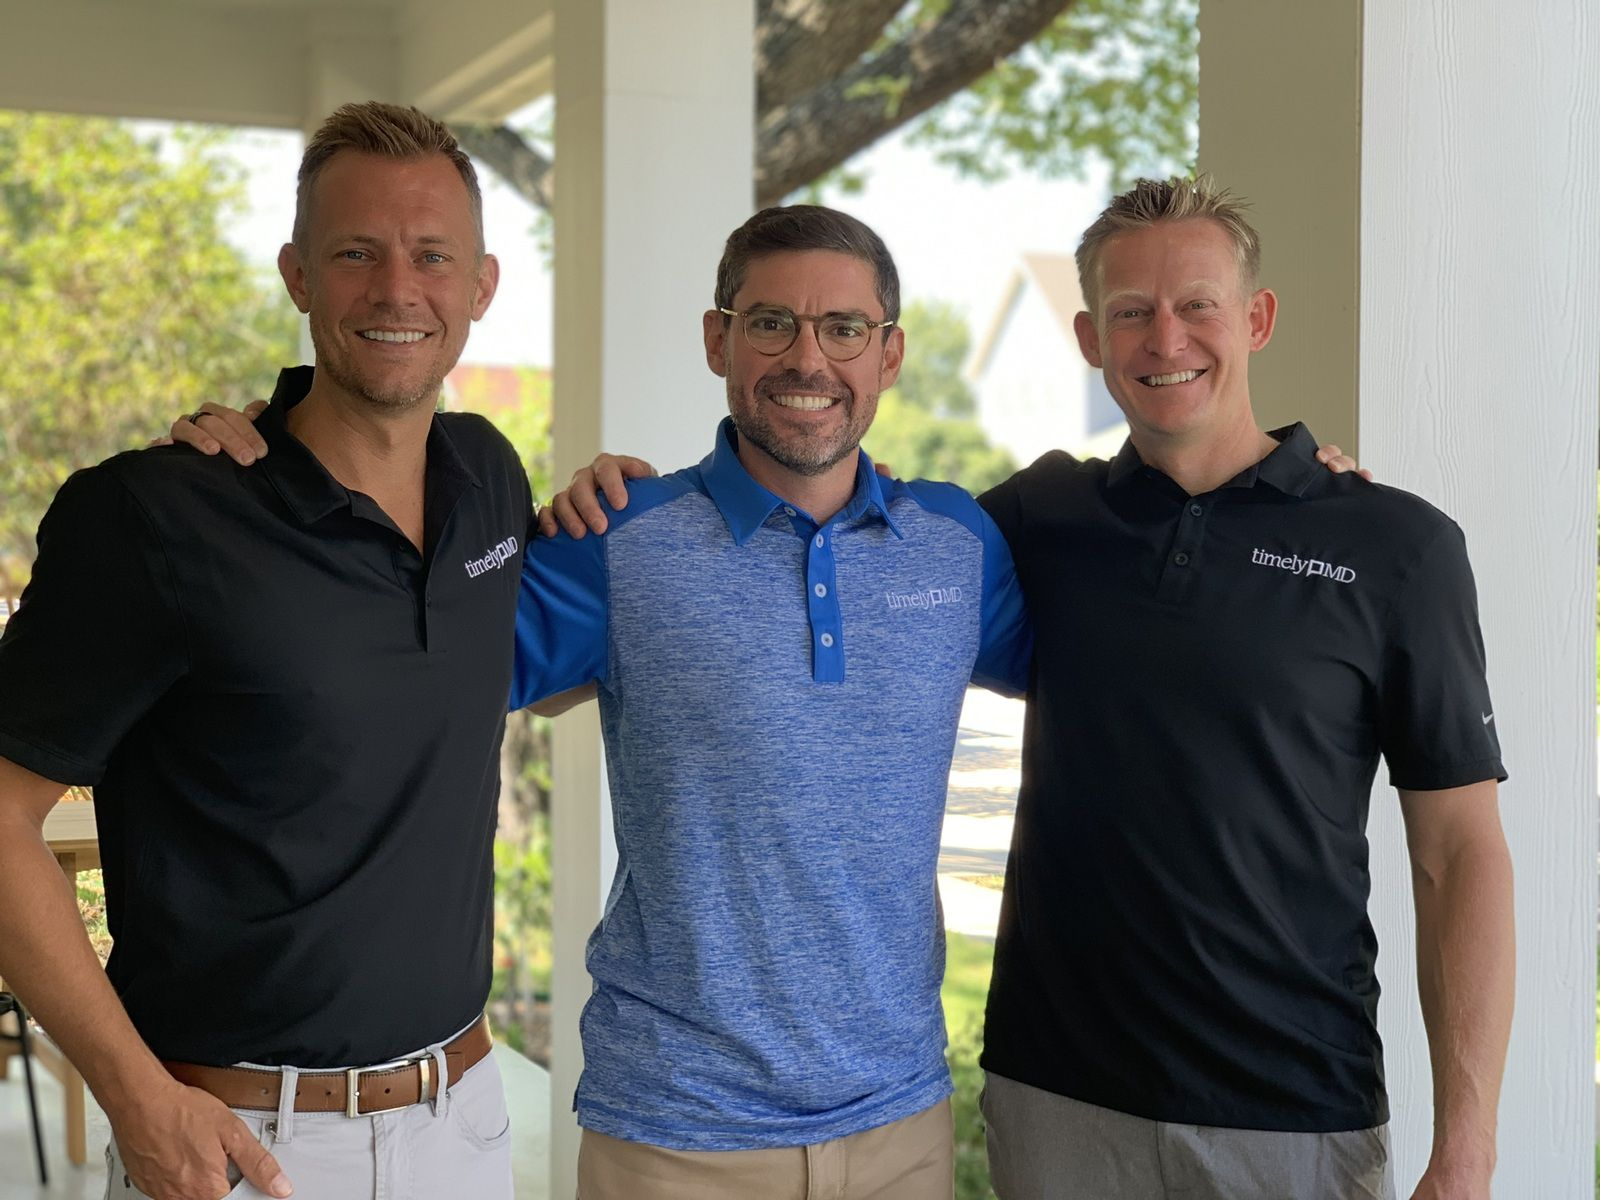 TimelyMD founders Chris Clark (left), Luke Hejl (center) and Alan Dennington (right). Clark serves as chief strategy officer, Hejl is CEO and Dennington is chief medical officer.